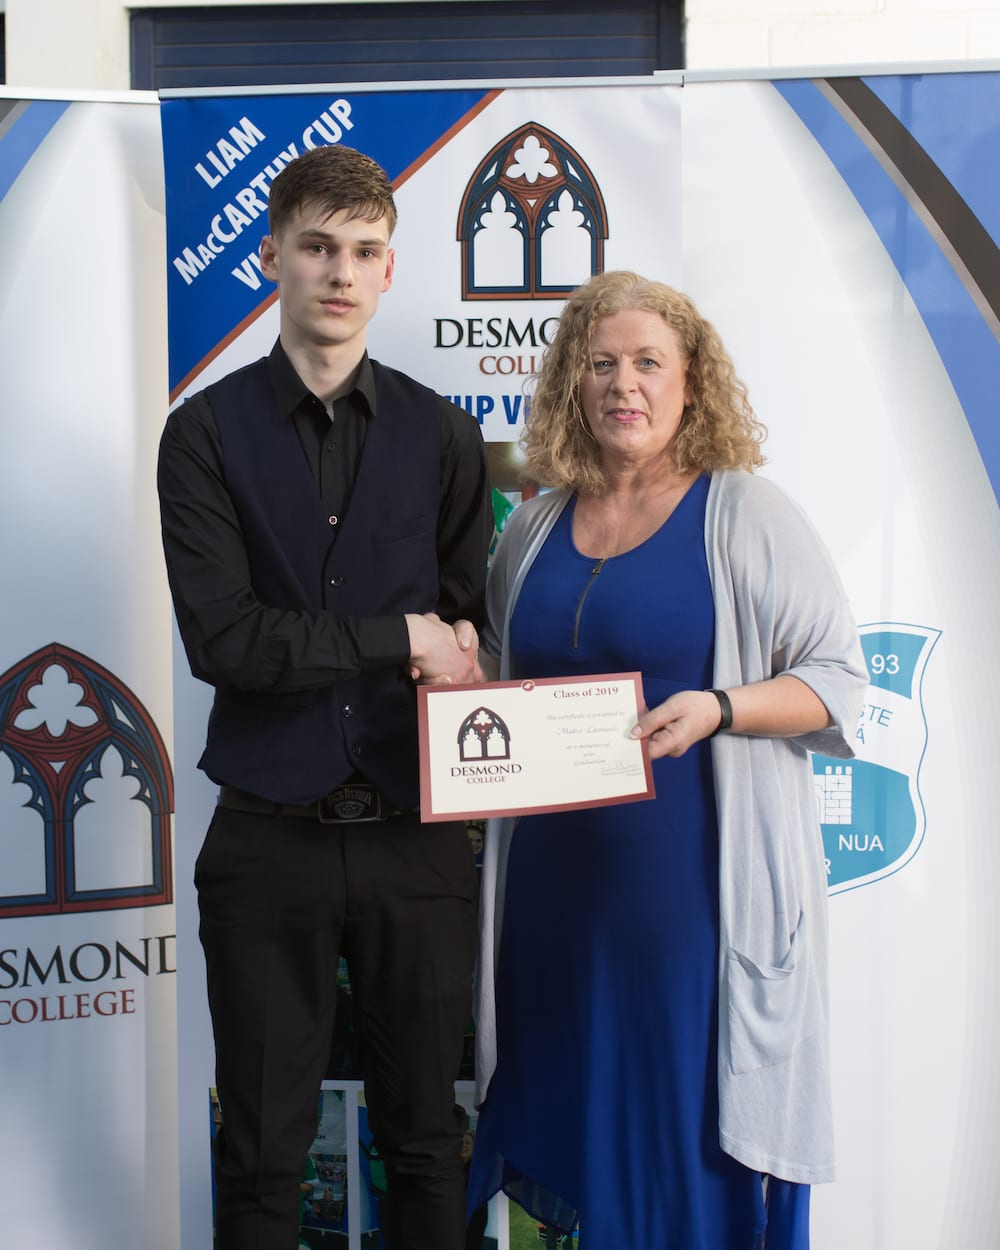 Desmond College Graduation 2019